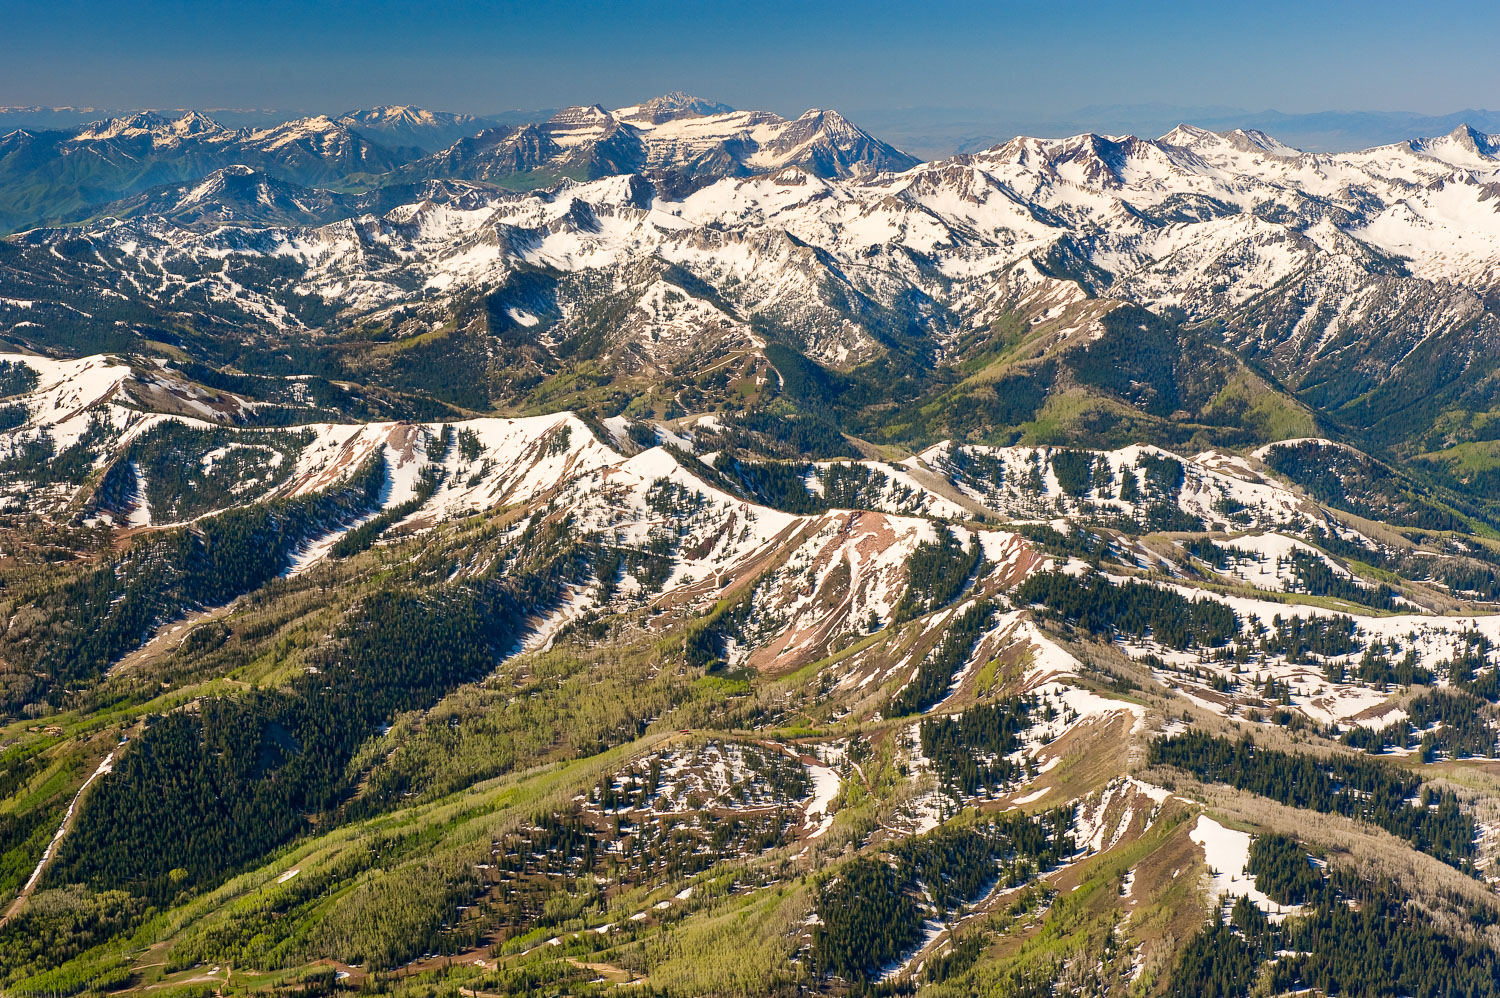 Aerial Photograph showing springtime in mountains. Several wilde